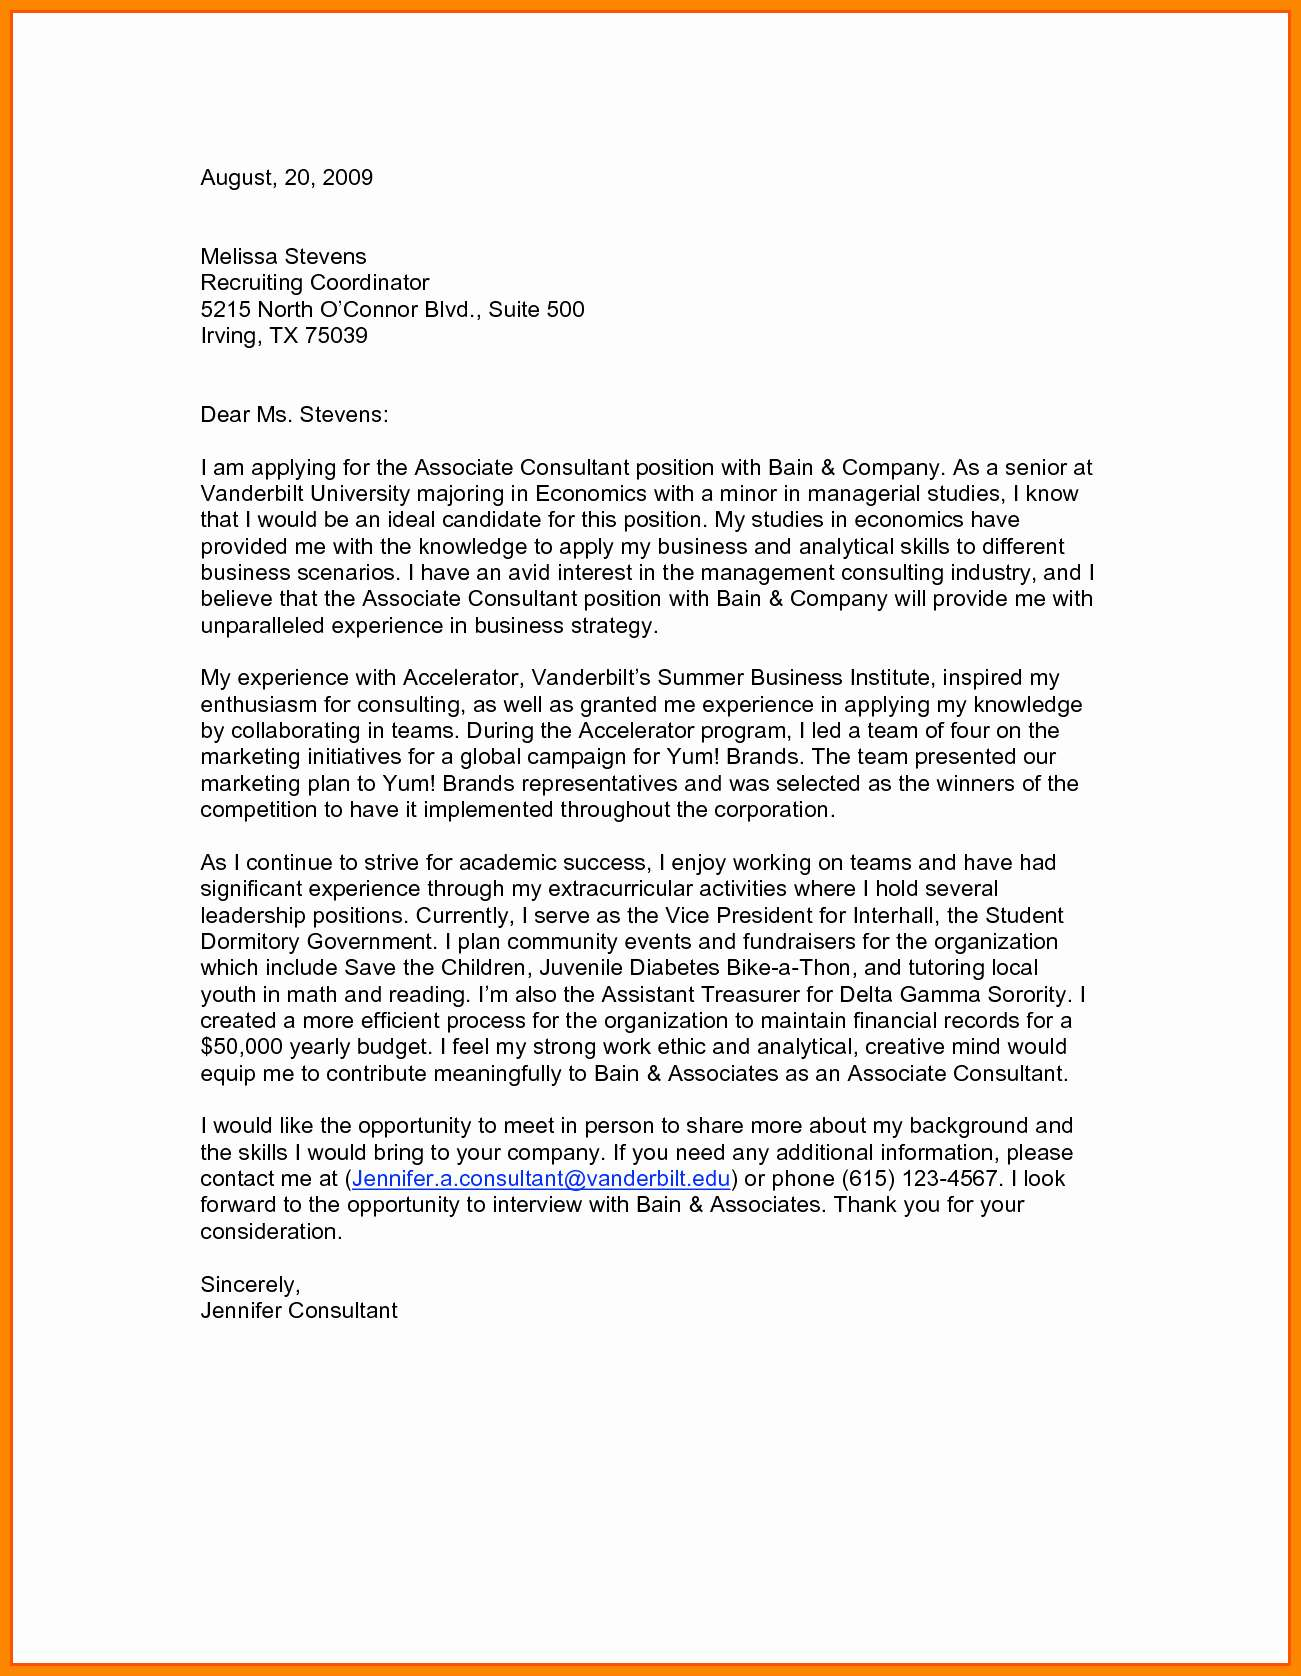 Modern Resume and Cover Letter Template - Resume Cover Letter Template Free Awesome Od Consultant Cover Letter